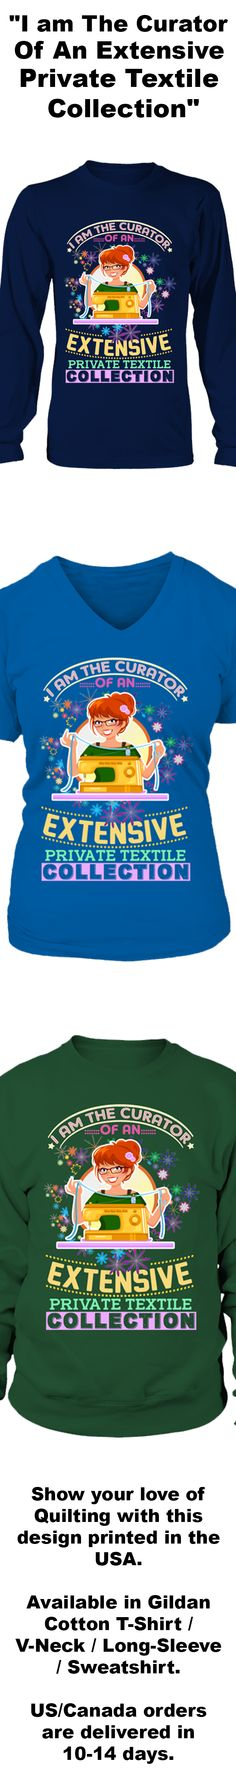 """""""I am The Curator Of An Extensive Private Textile Collection""""...  Show your love of Quilting with this design printed in the USA.  Available in Gildan Cotton T-Shirt / V-Neck / Long-Sleeve / Sweatshirt.   US/Canada orders are delivered in 10-14 days."""